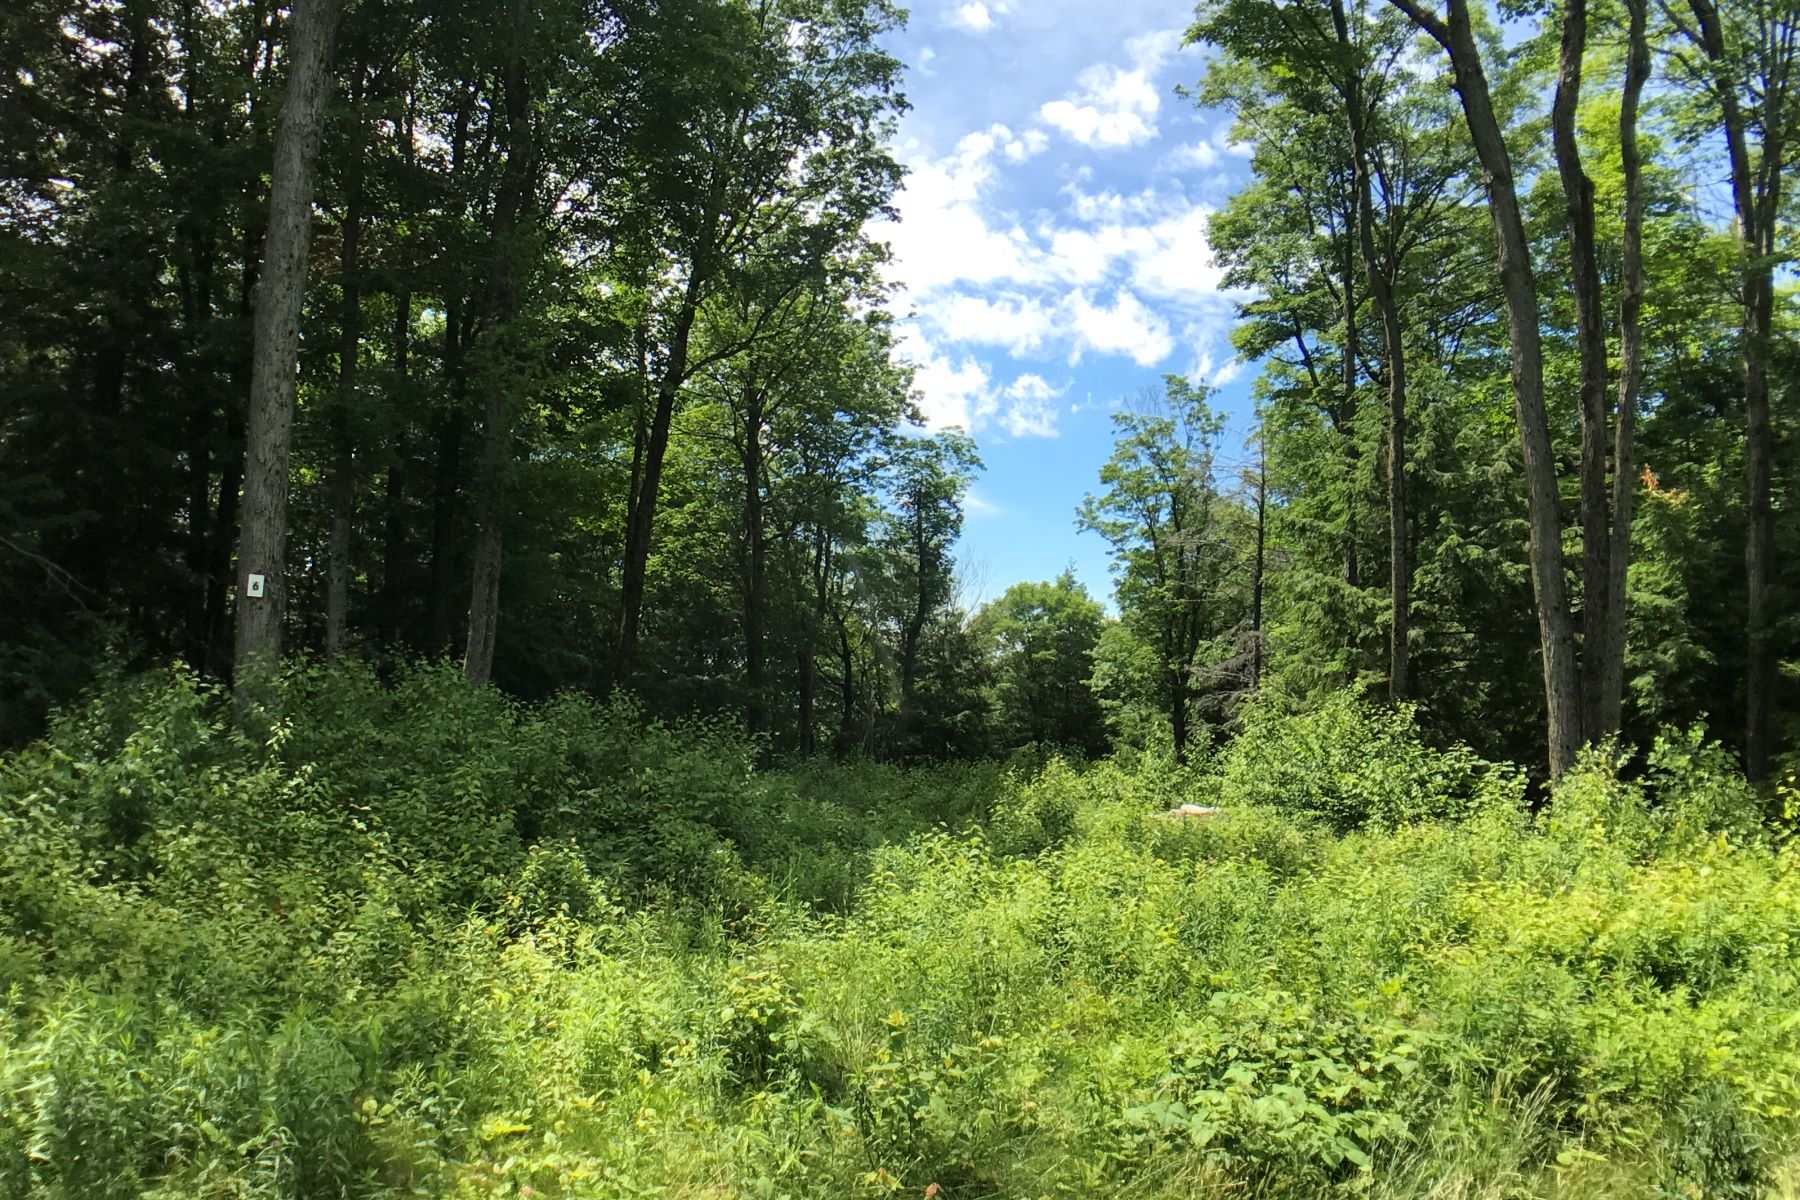 Terrain pour l Vente à Affordable Ready-to-Build Parcel with Shared Waterfront Access Lot #6, Moose Dr, Lee, Massachusetts, 01238 États-Unis